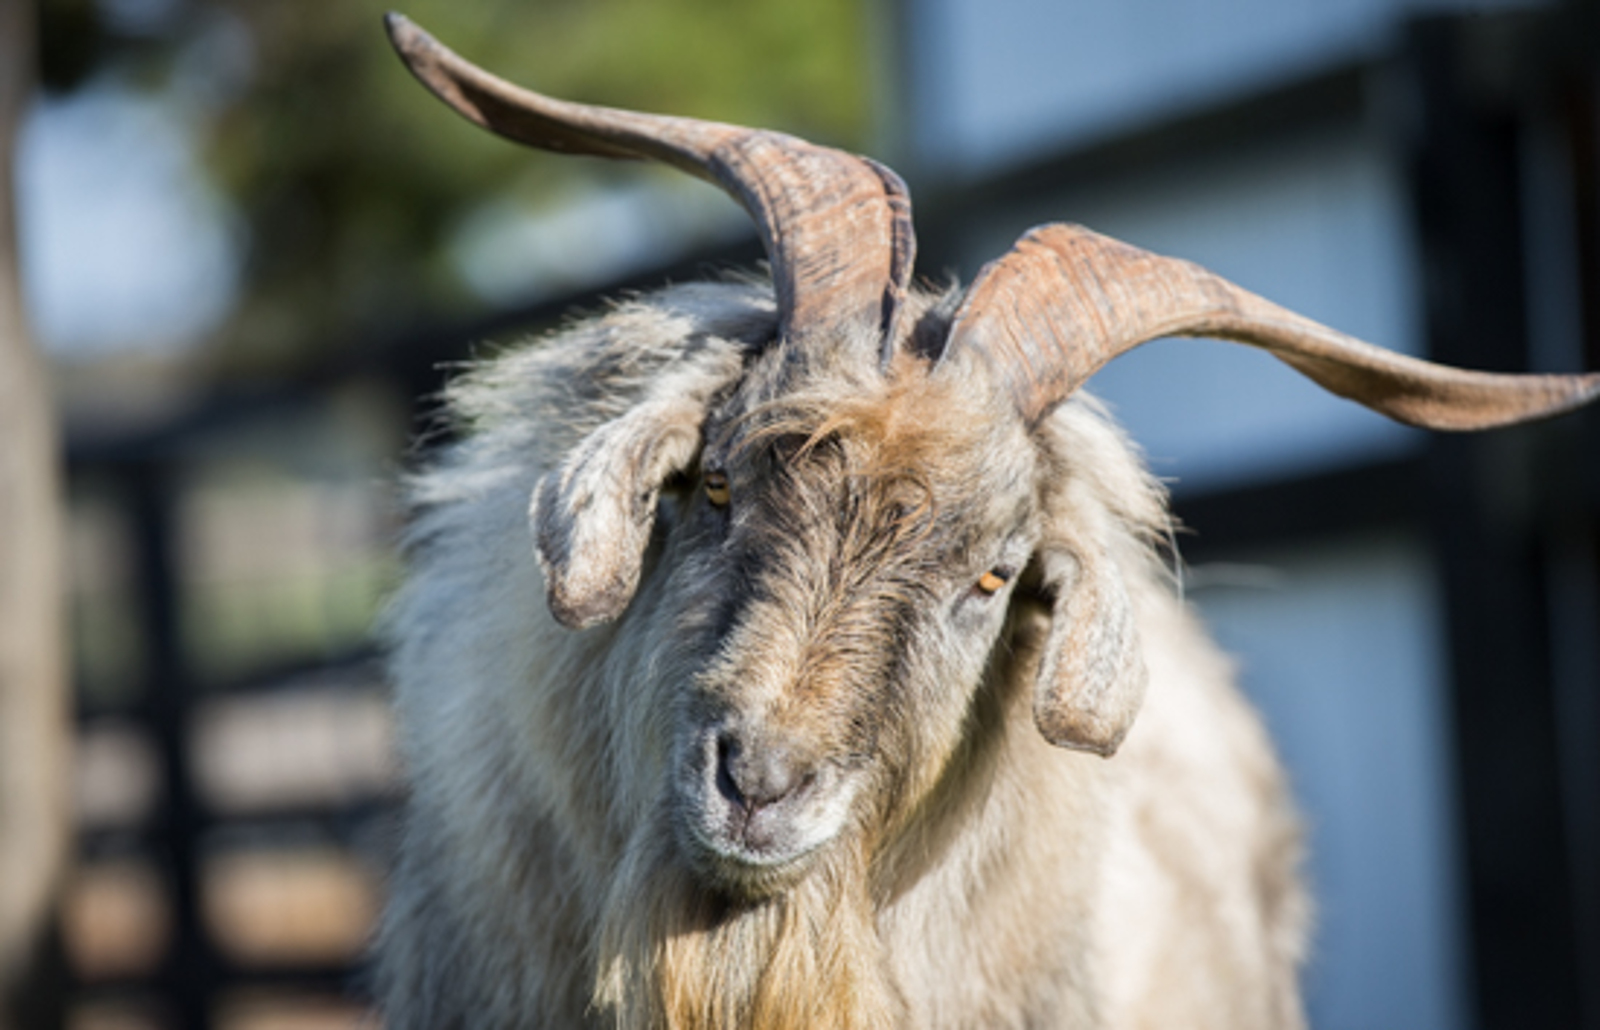 What Gandalf the Ram Can Teach Us About Setting Aside Stereotypes in Favor of Compassion